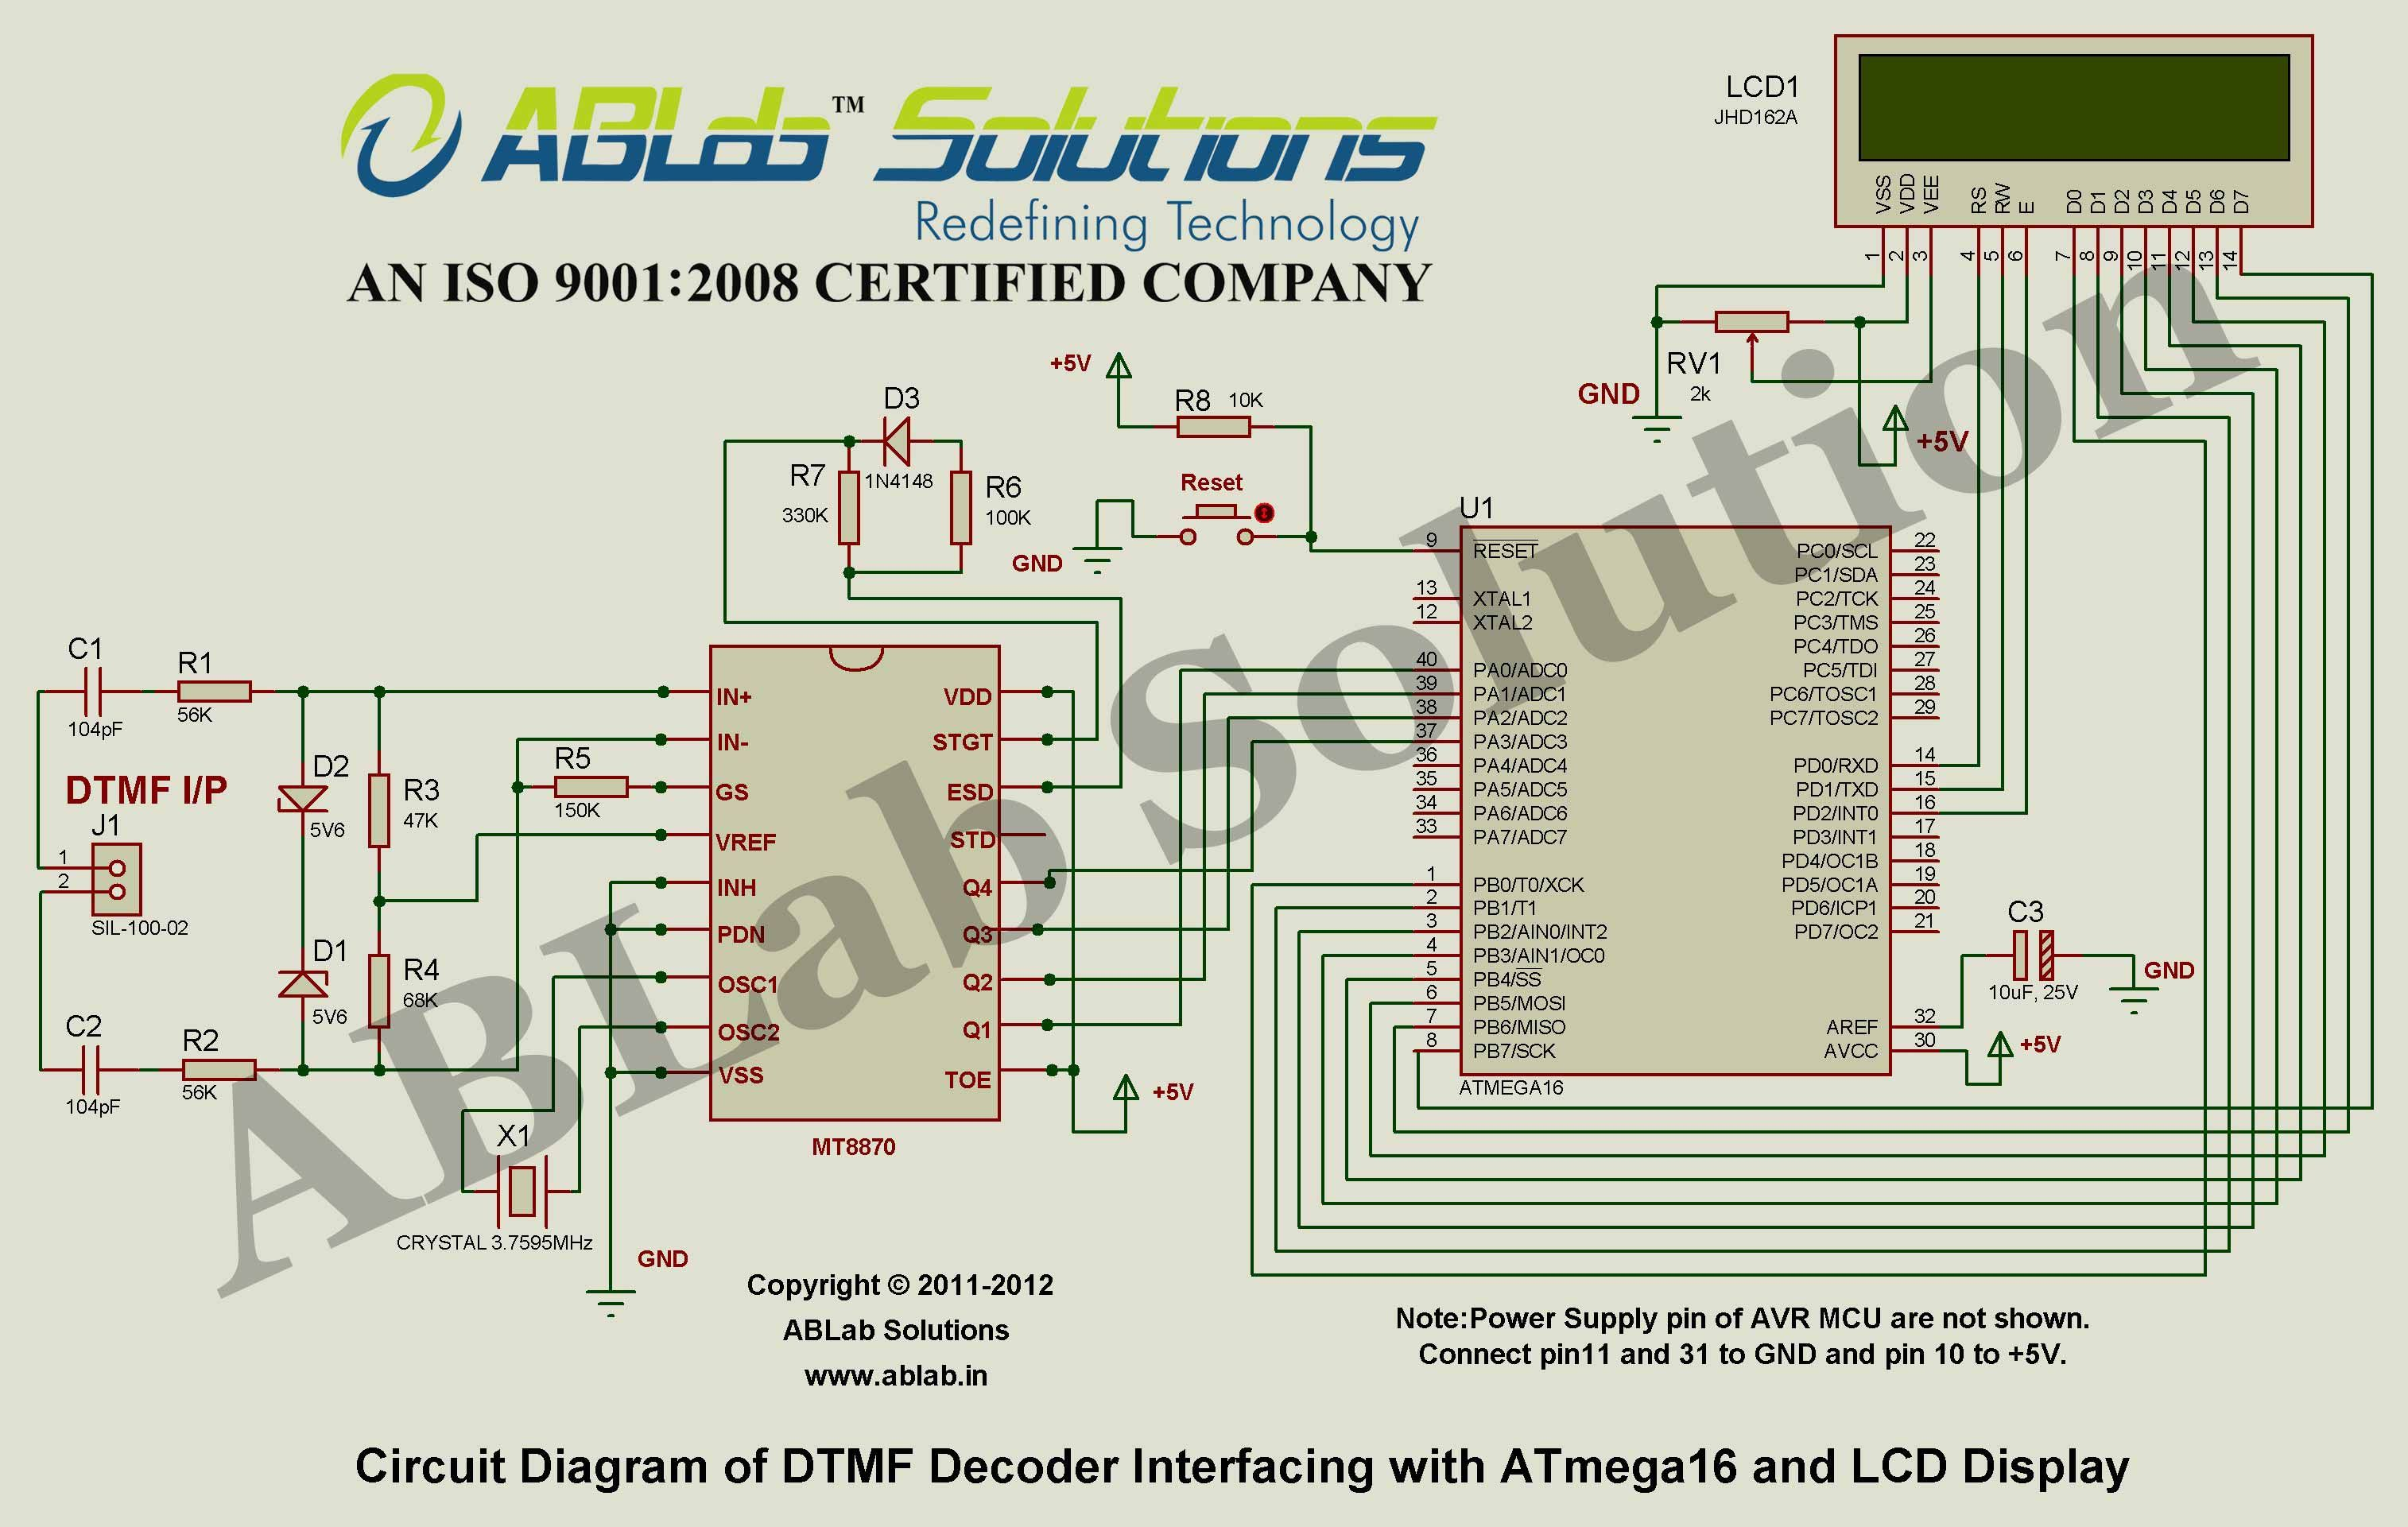 Dtmf Decoder Interfacing With Avr Atmega16 Microcontroller And Lcd Phone